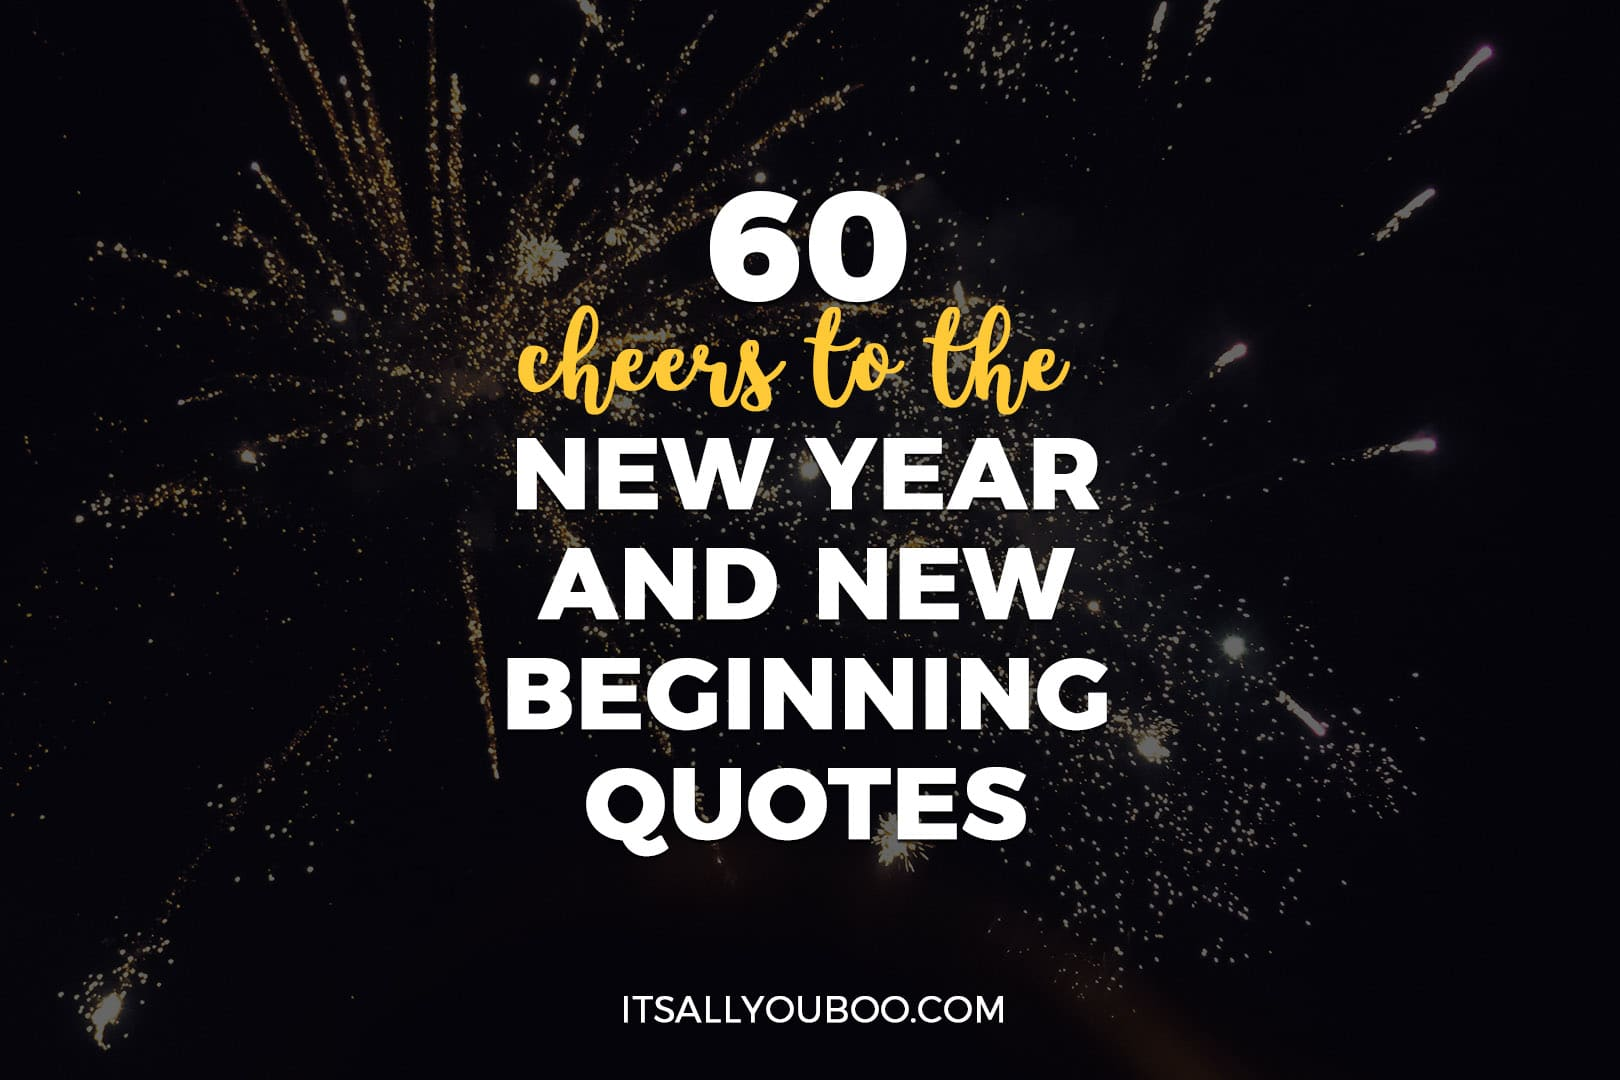 60 Cheers to the New Year and New Beginnings Quotes